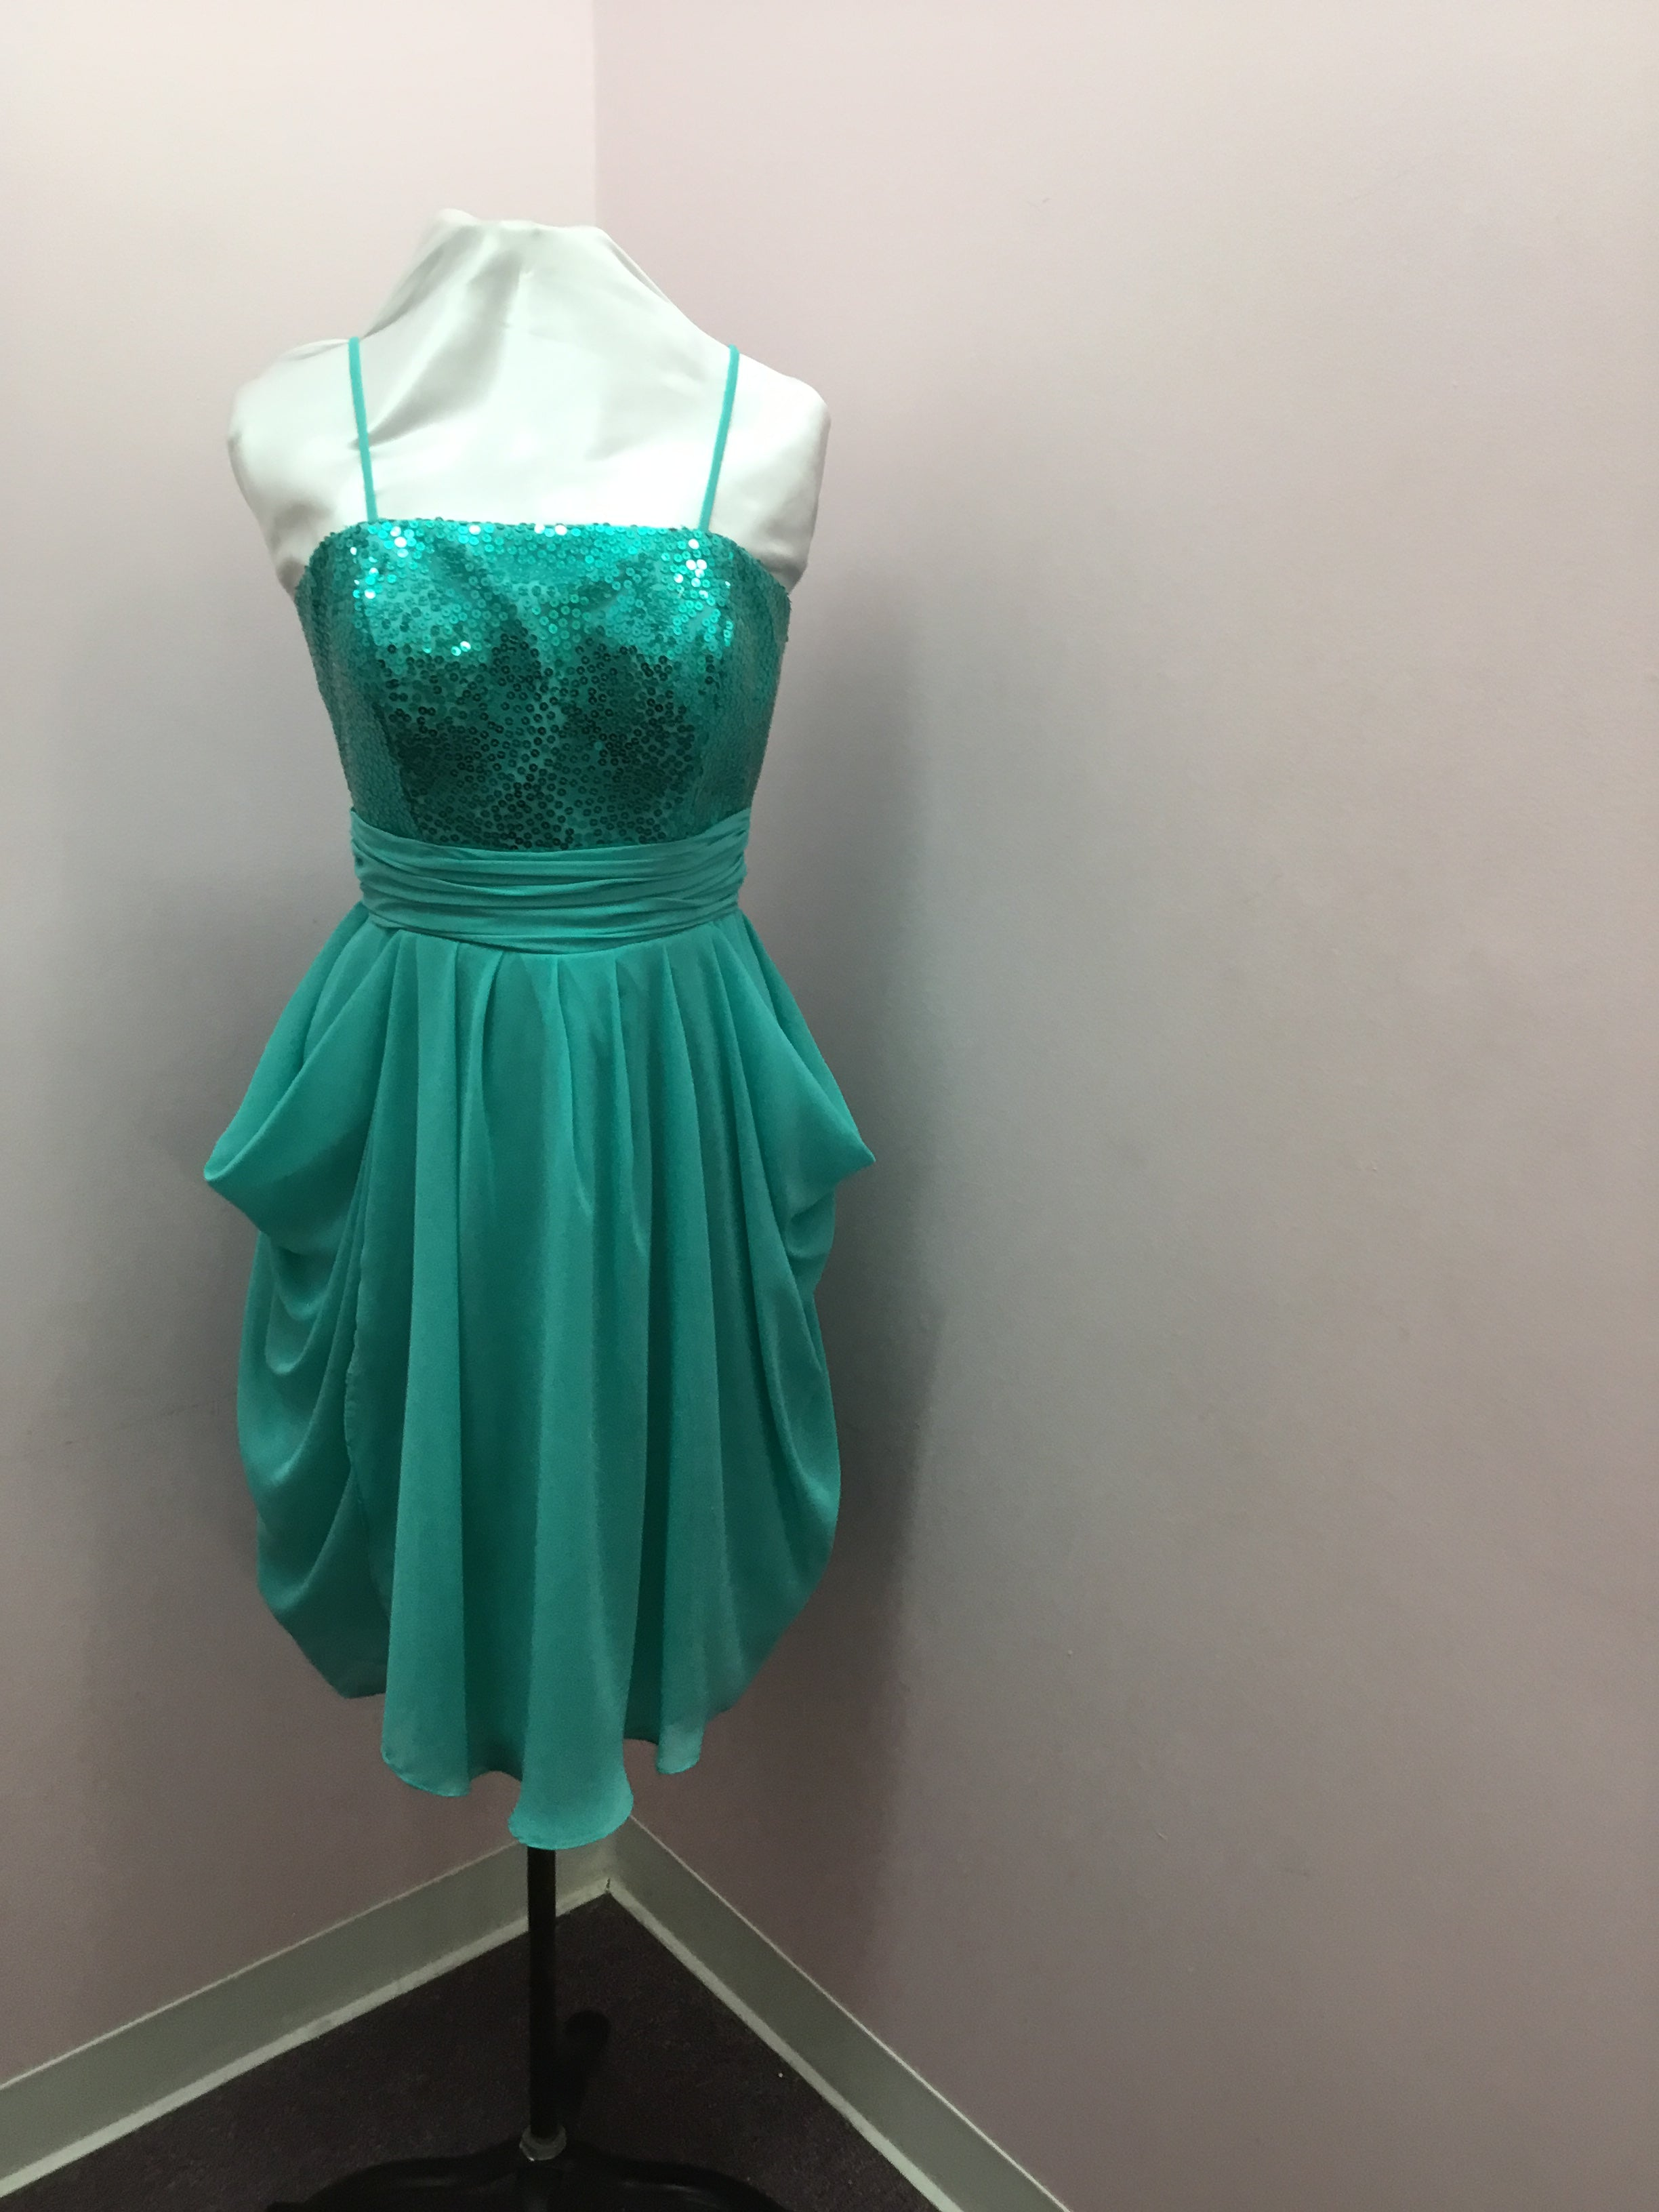 Sequin Turquoise Dress